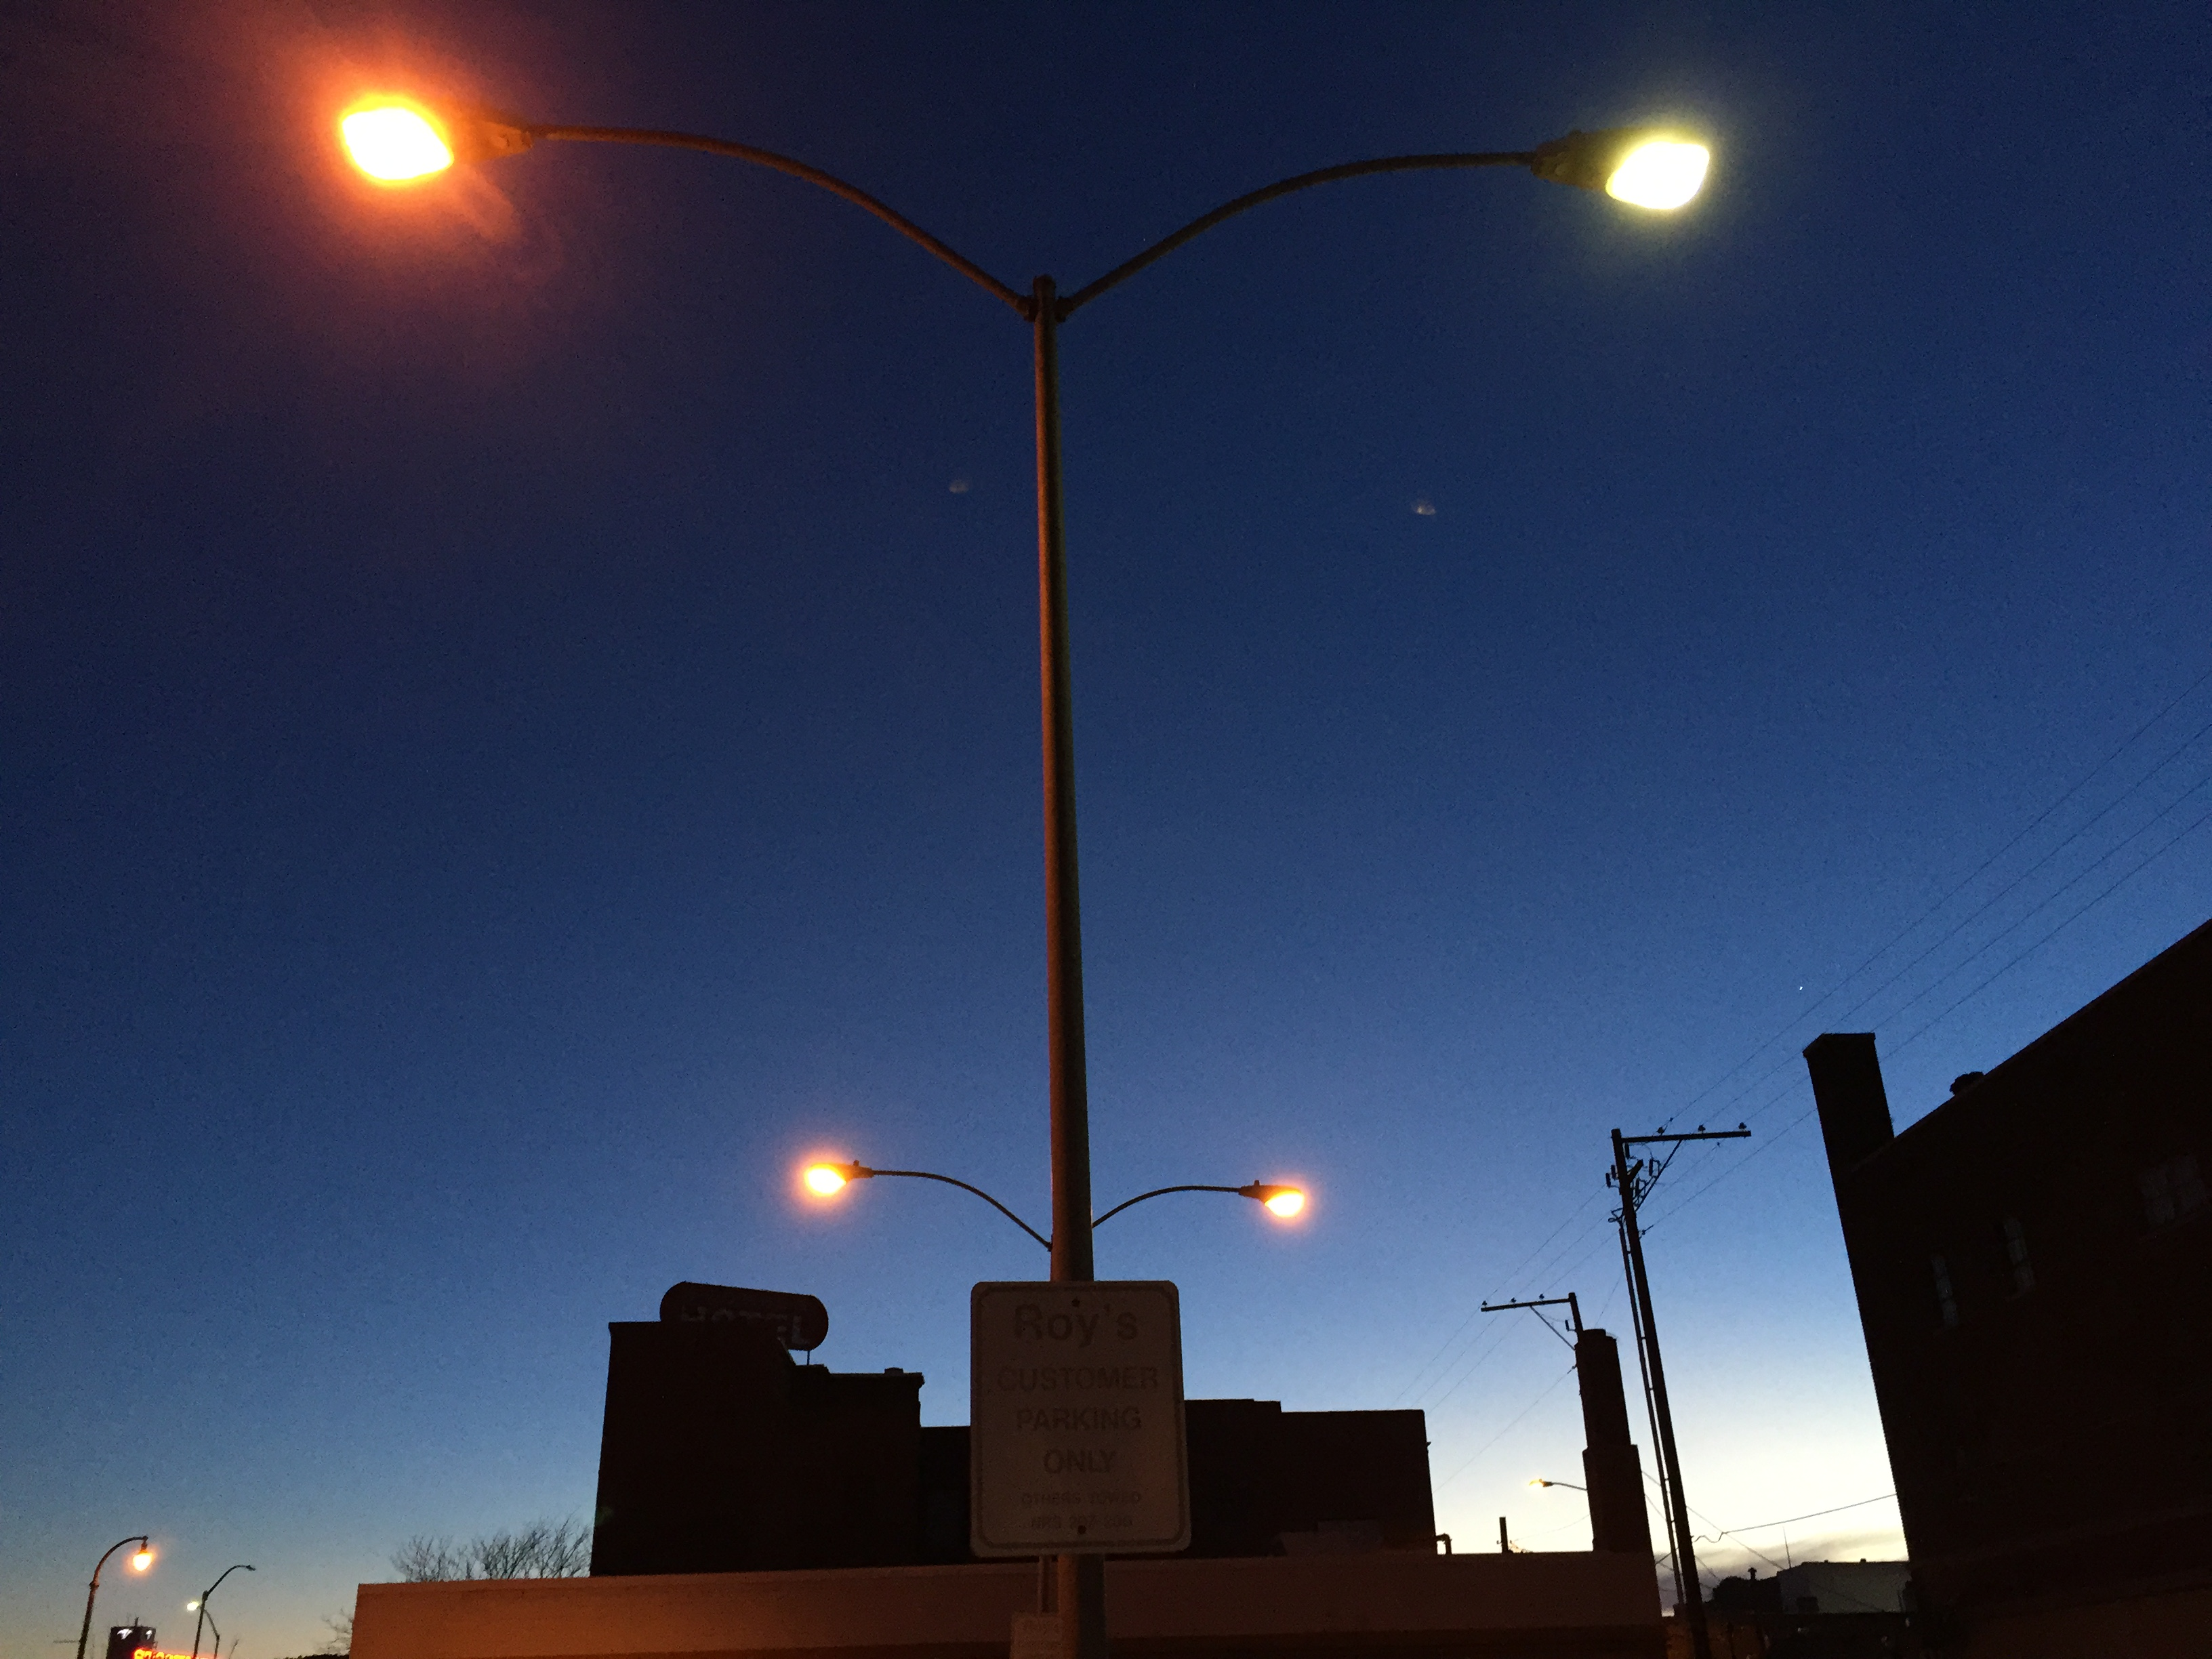 File 2015 02 13 17 39 16 Street Light Post With Both